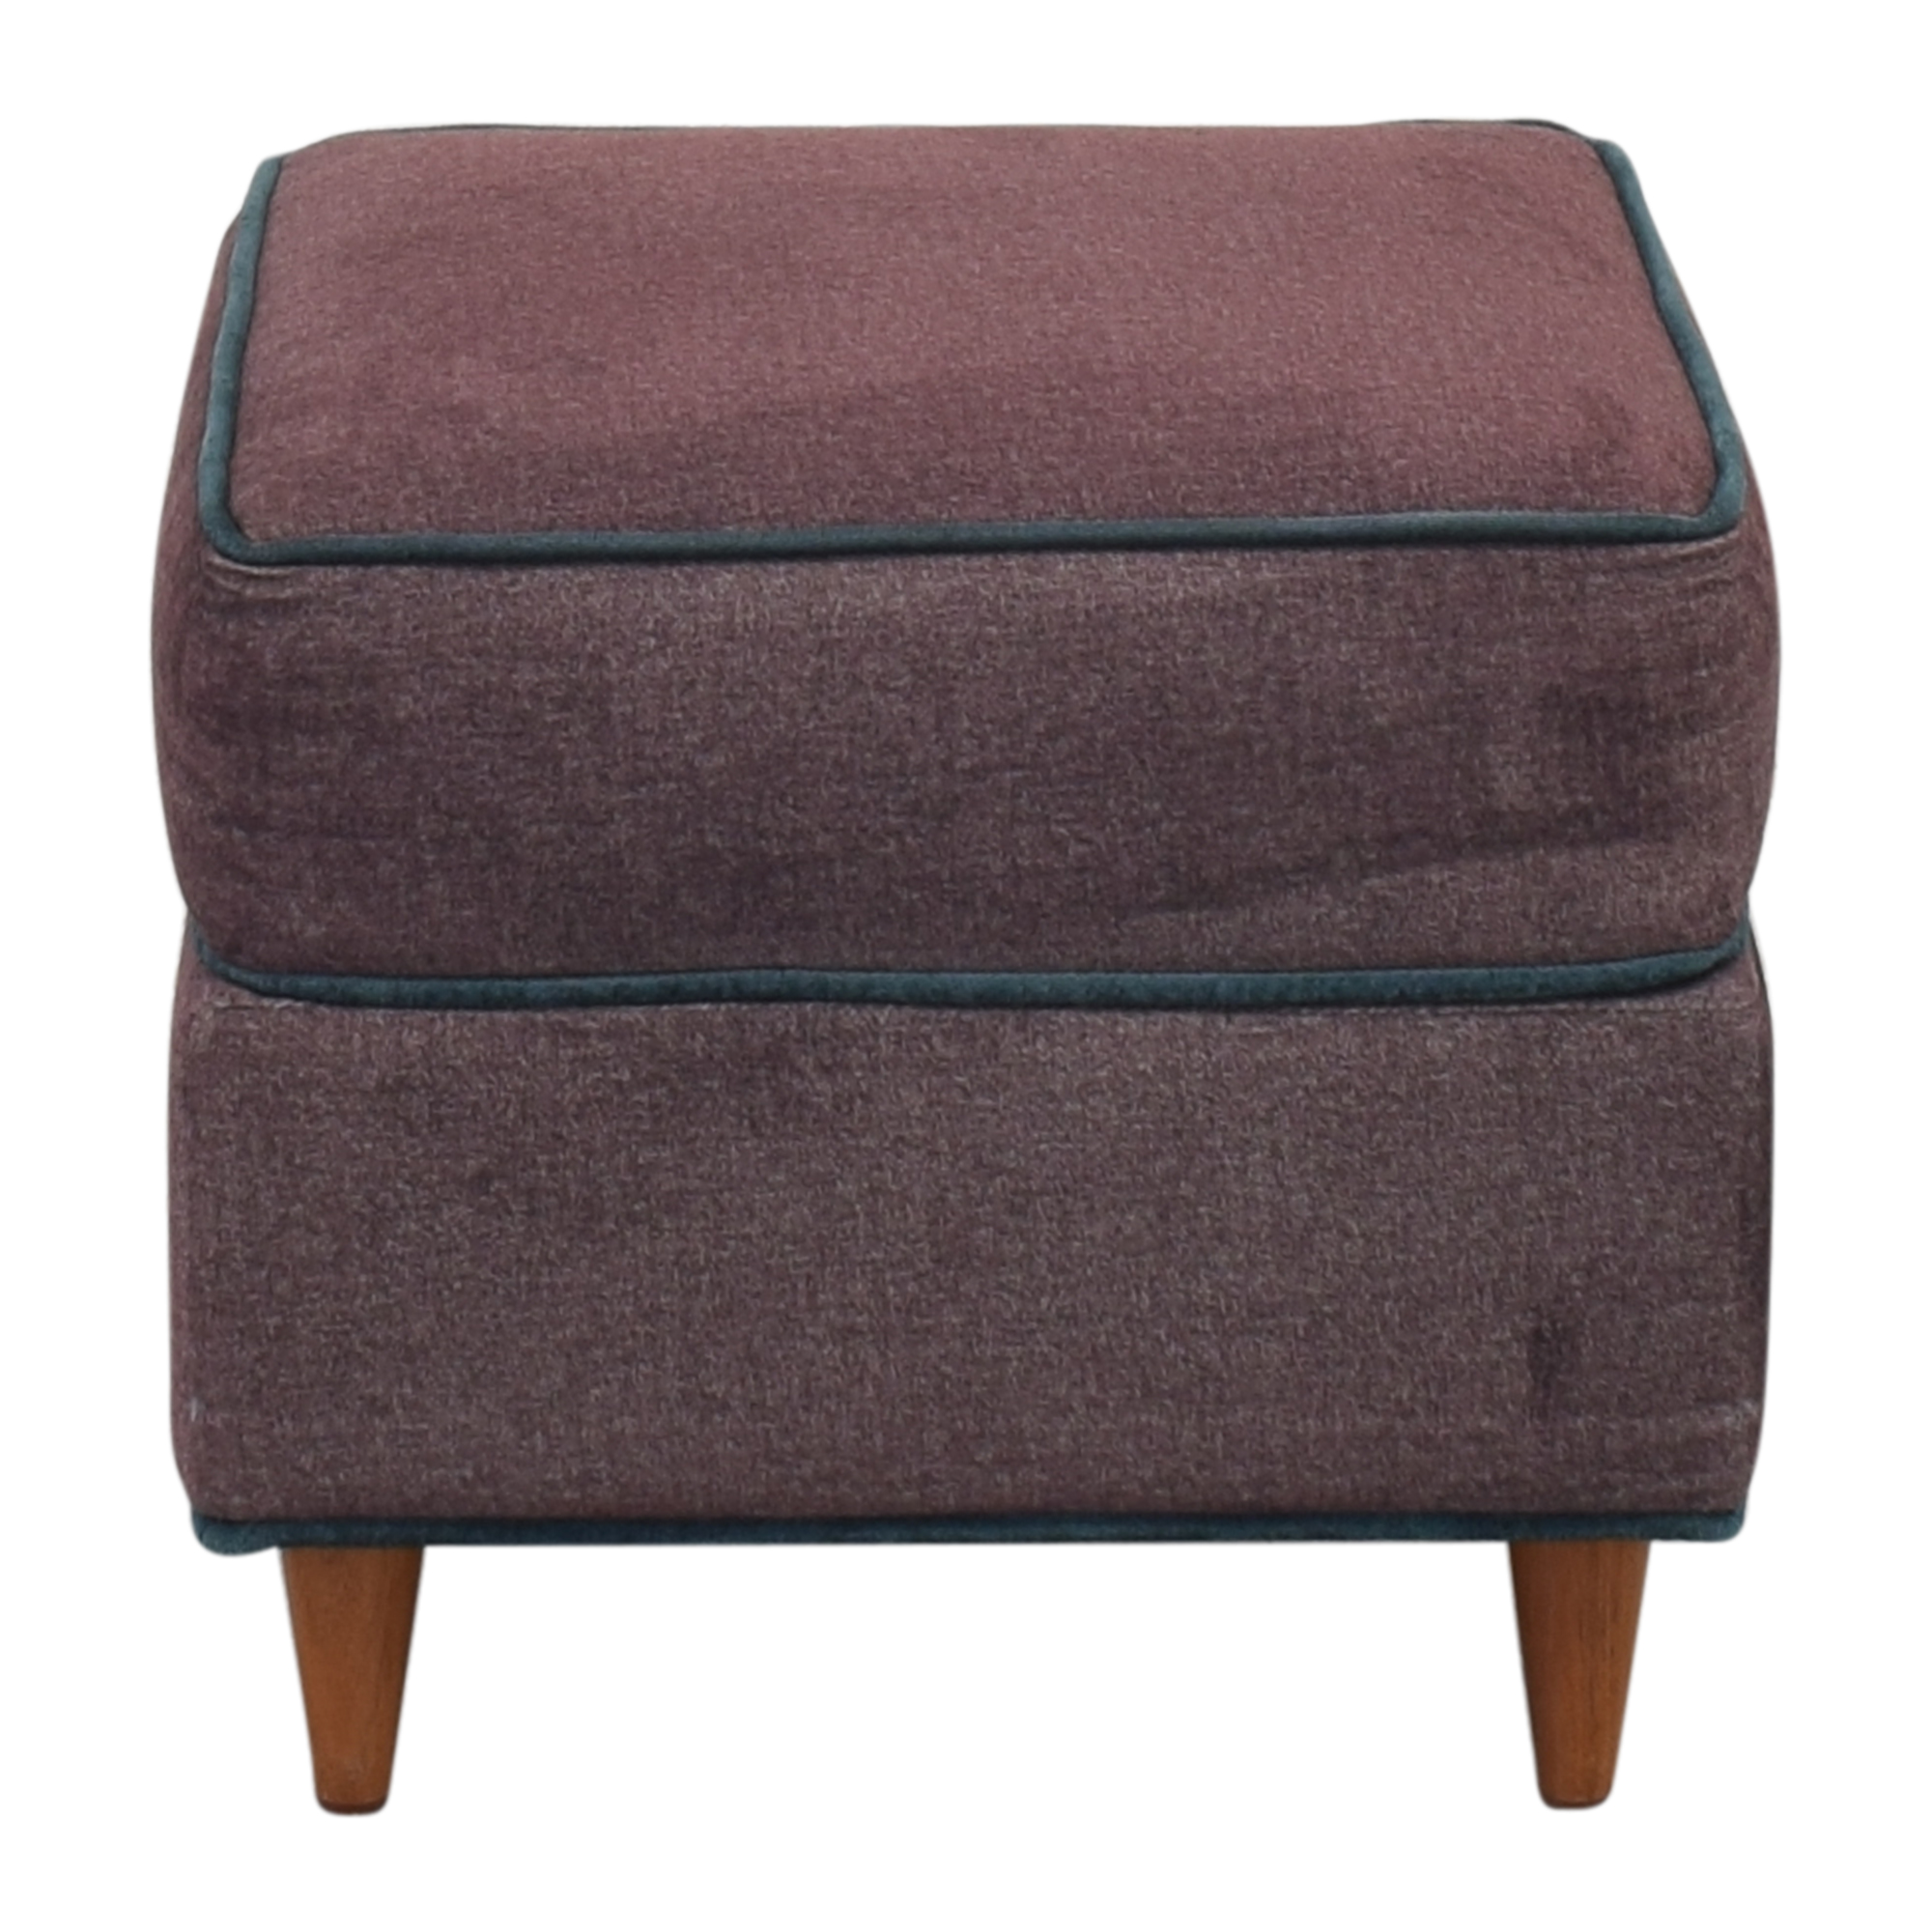 Custom Upholstered Ottoman second hand